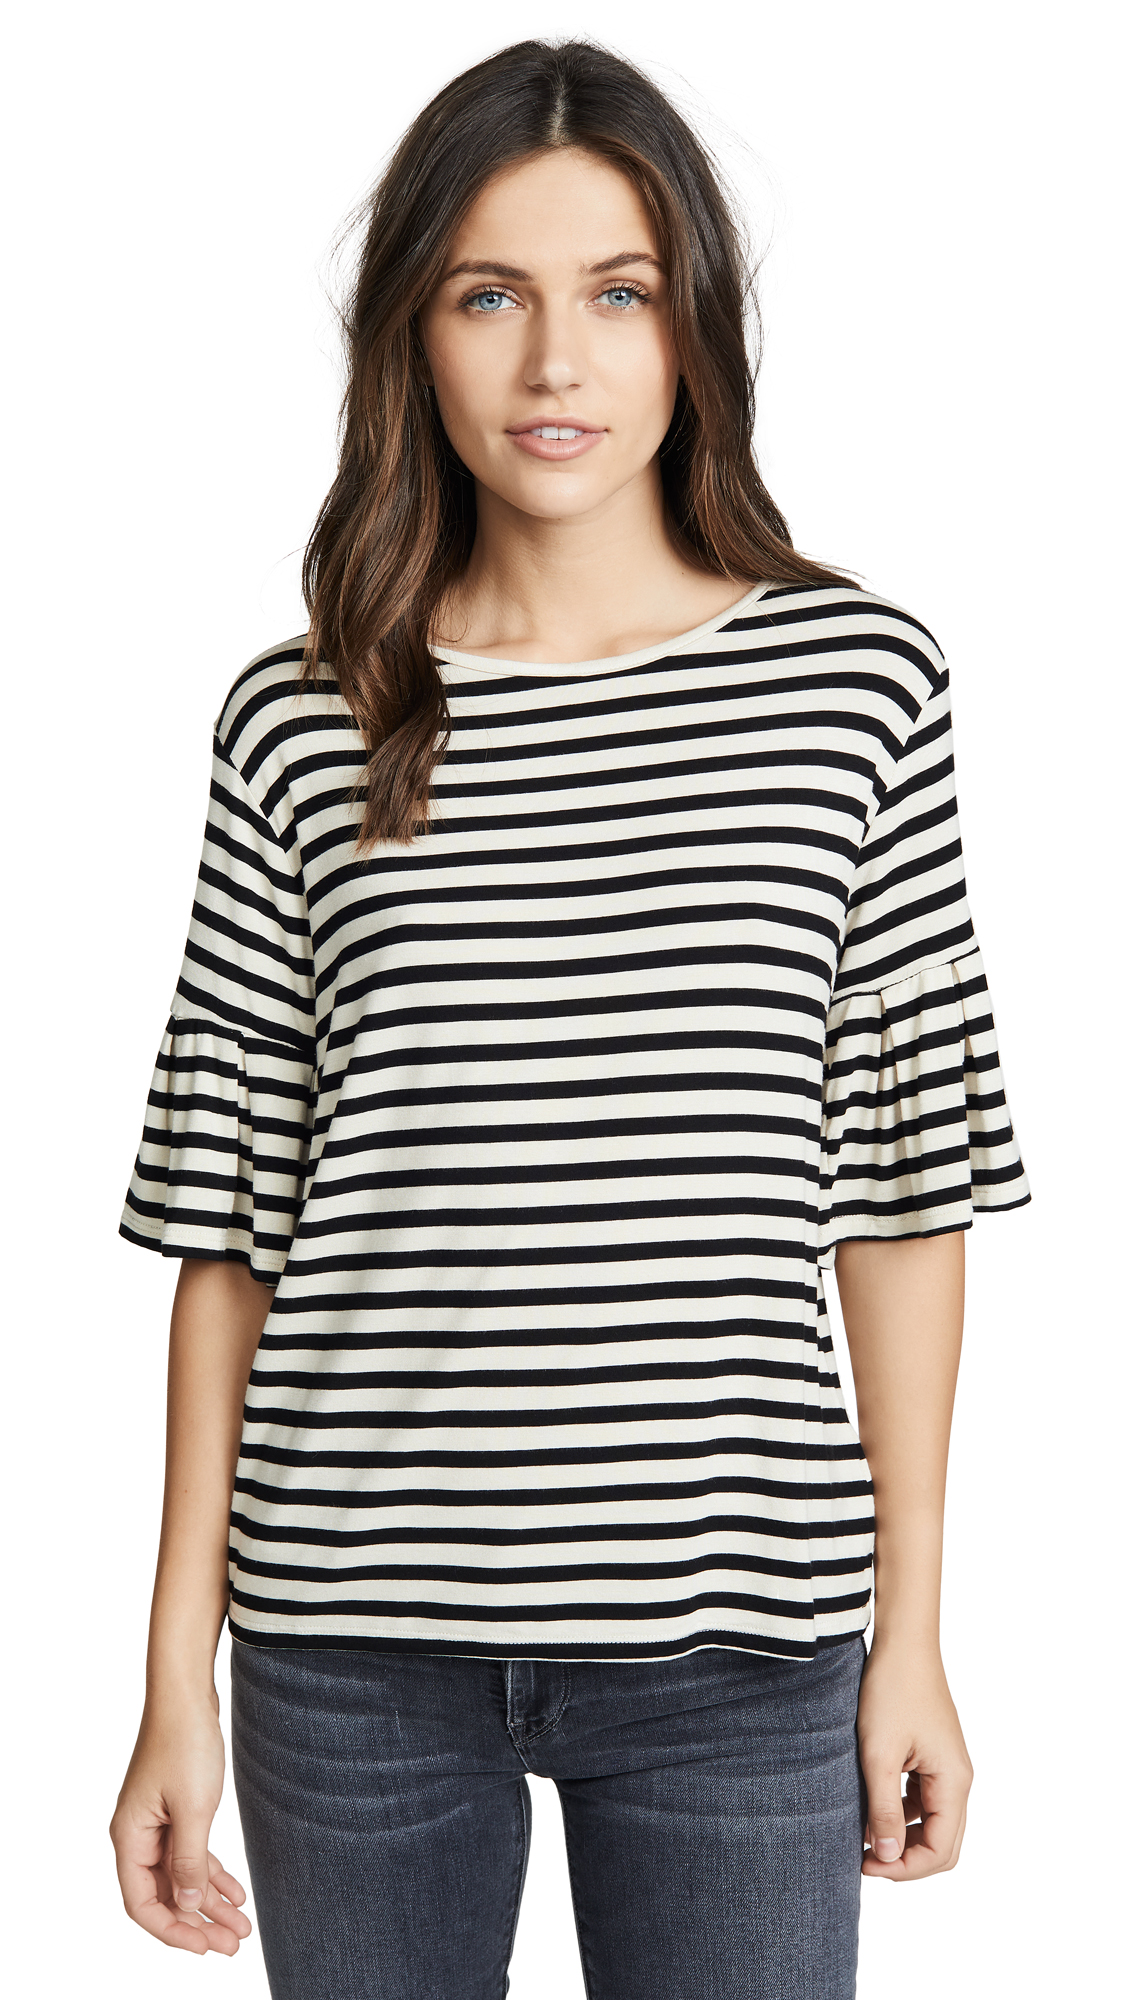 Z Supply Striped Ruffle Tee In Pearl/Black